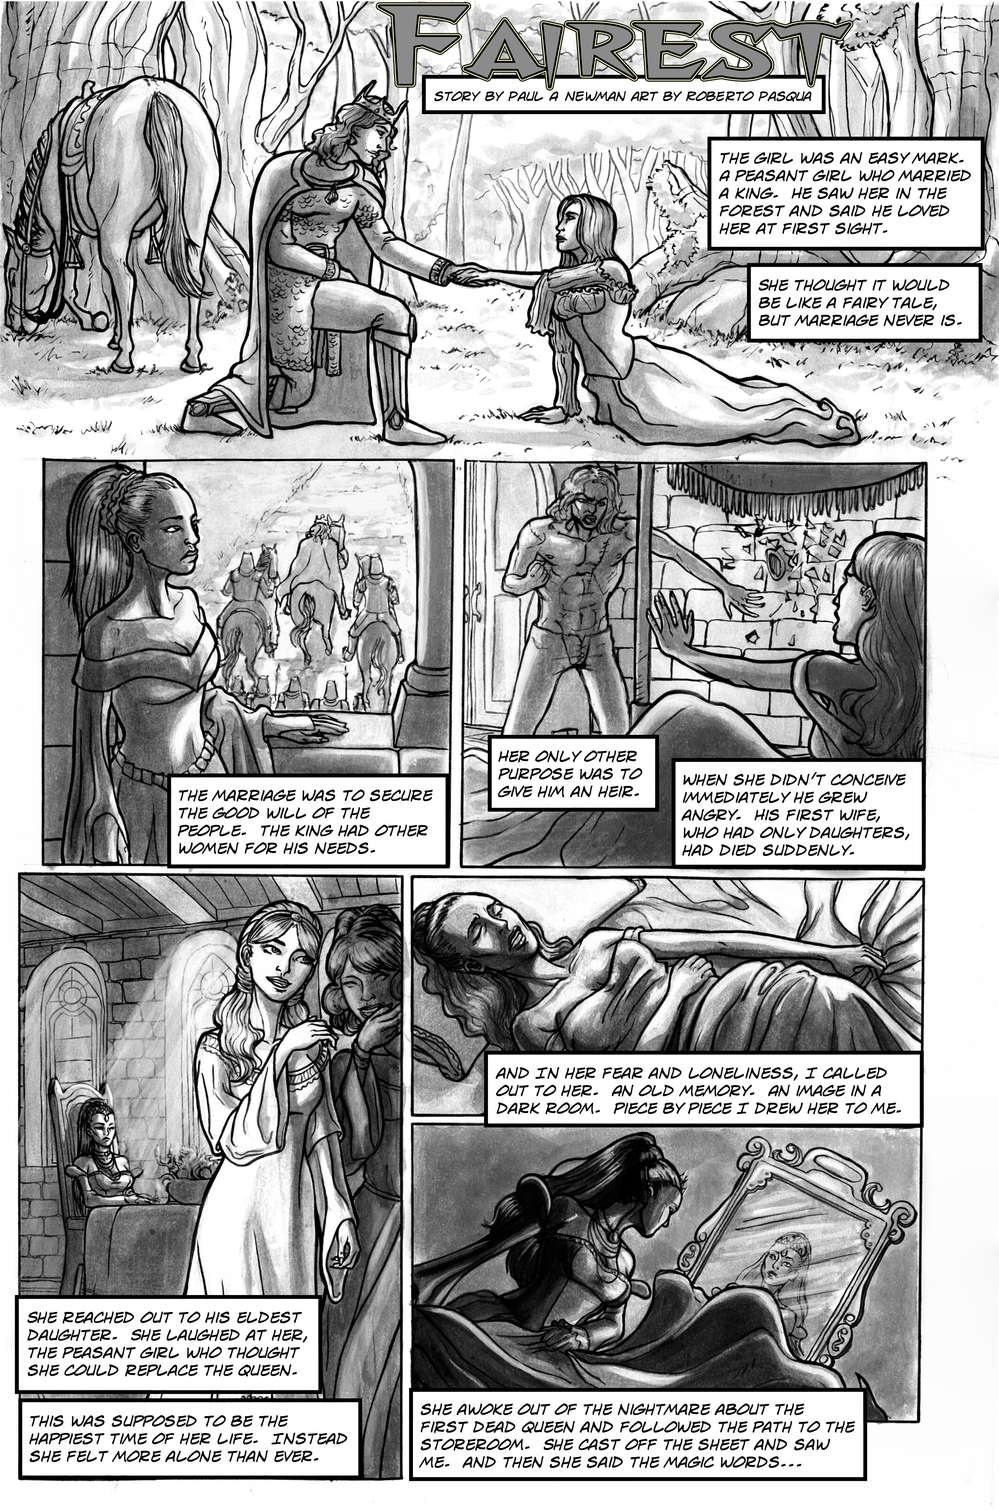 FAIREST page 2 - story 13 in The Book of Lies